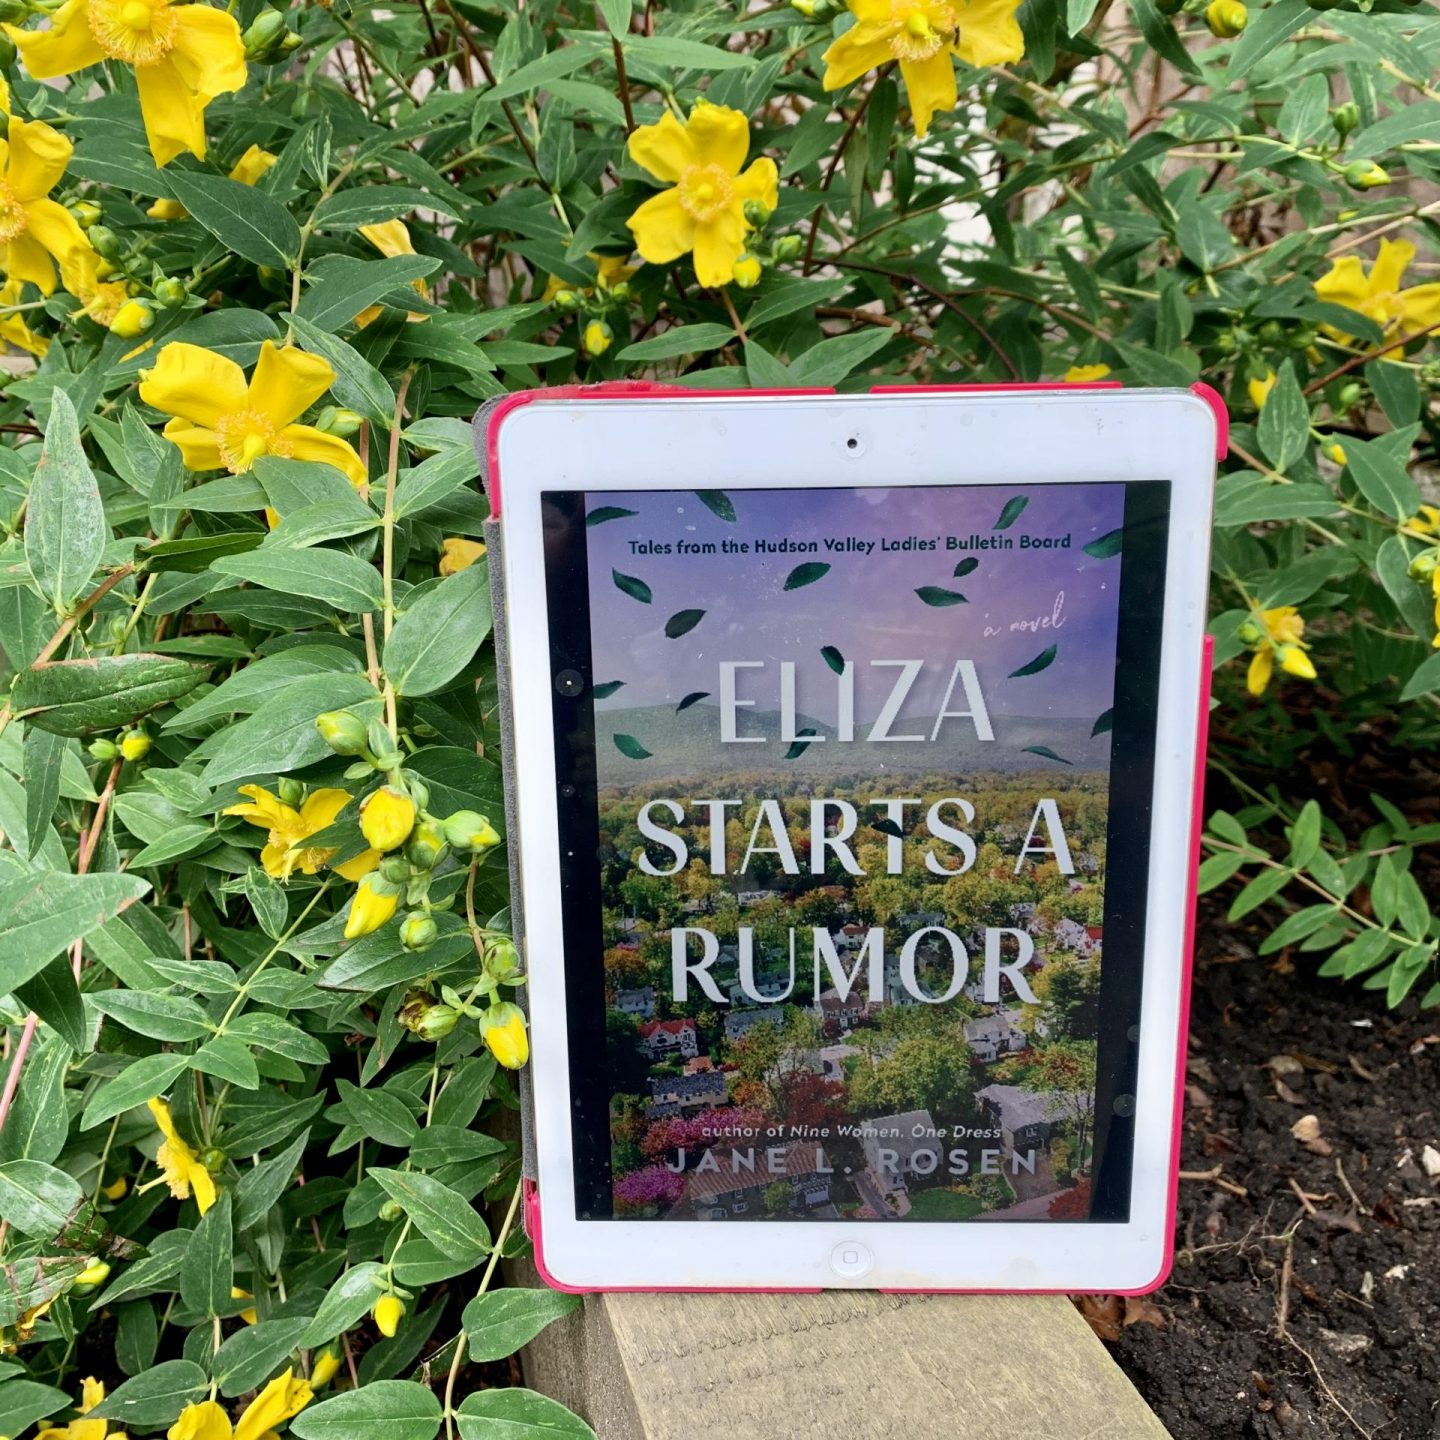 Eliza Starts a Rumor; an enjoyable, endearing read